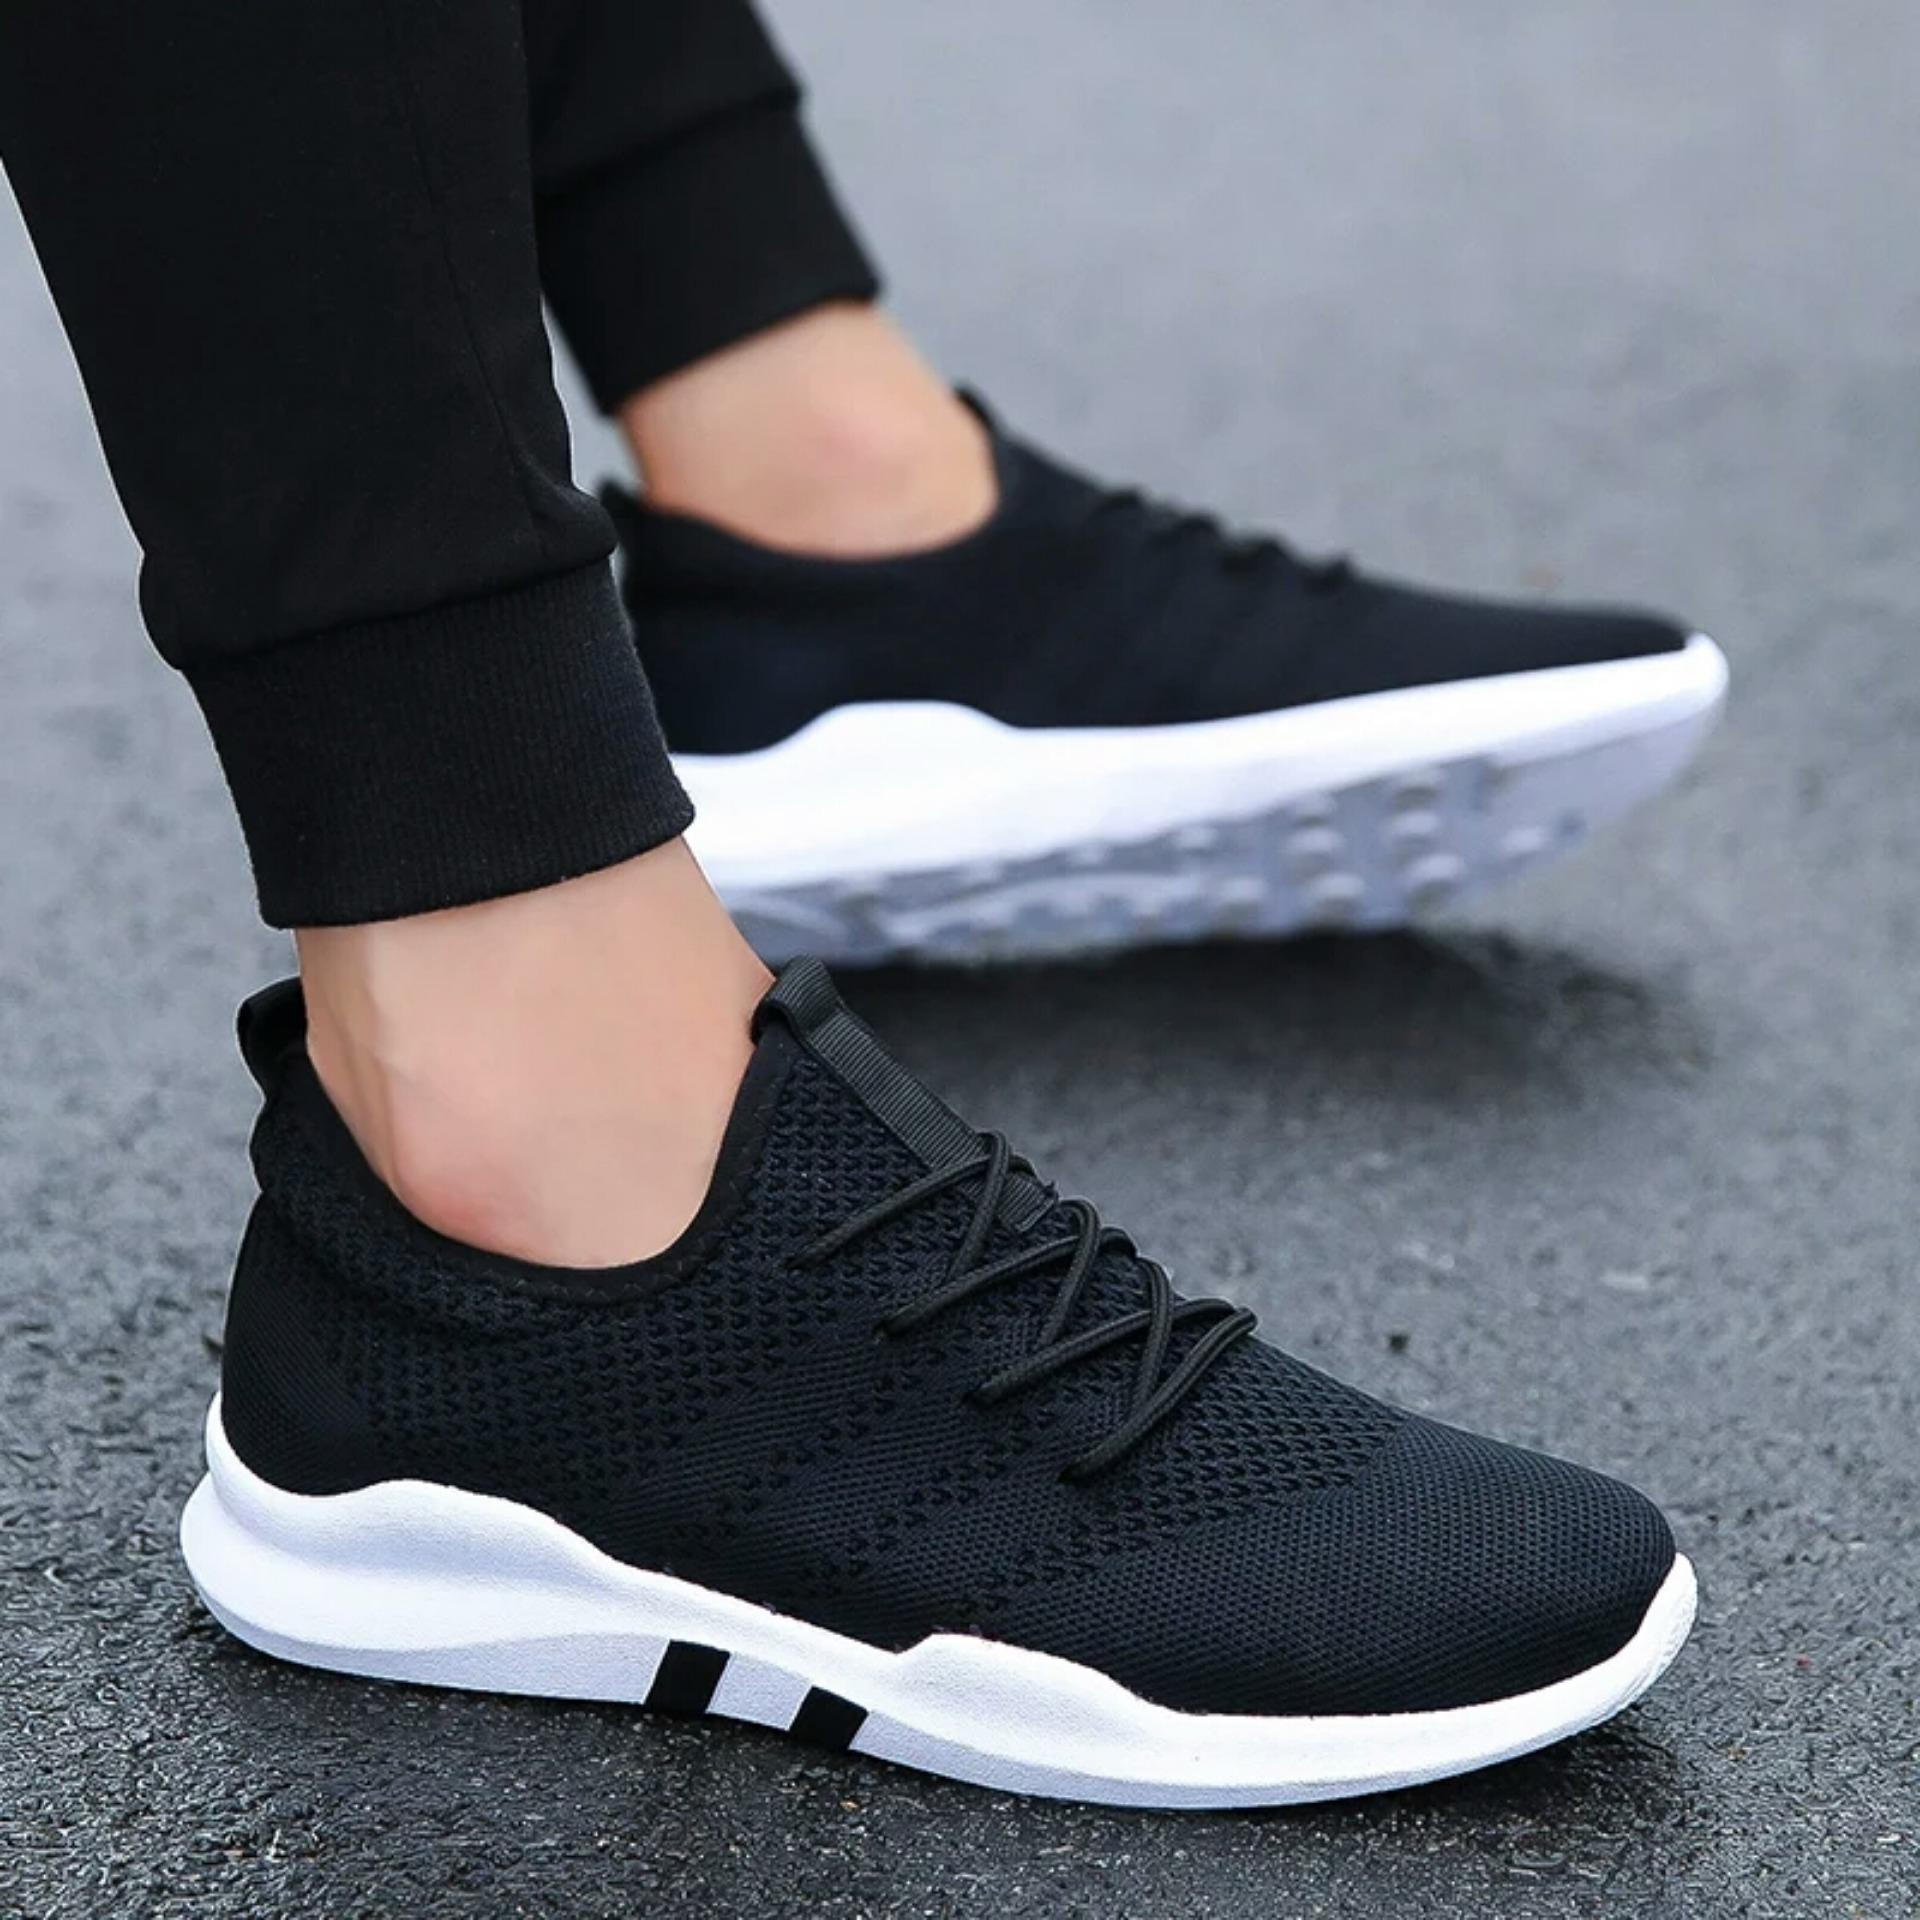 a6b0cab5352 Sports Shoes In Bangladesh At Best Price Online - Daraz.com.bd